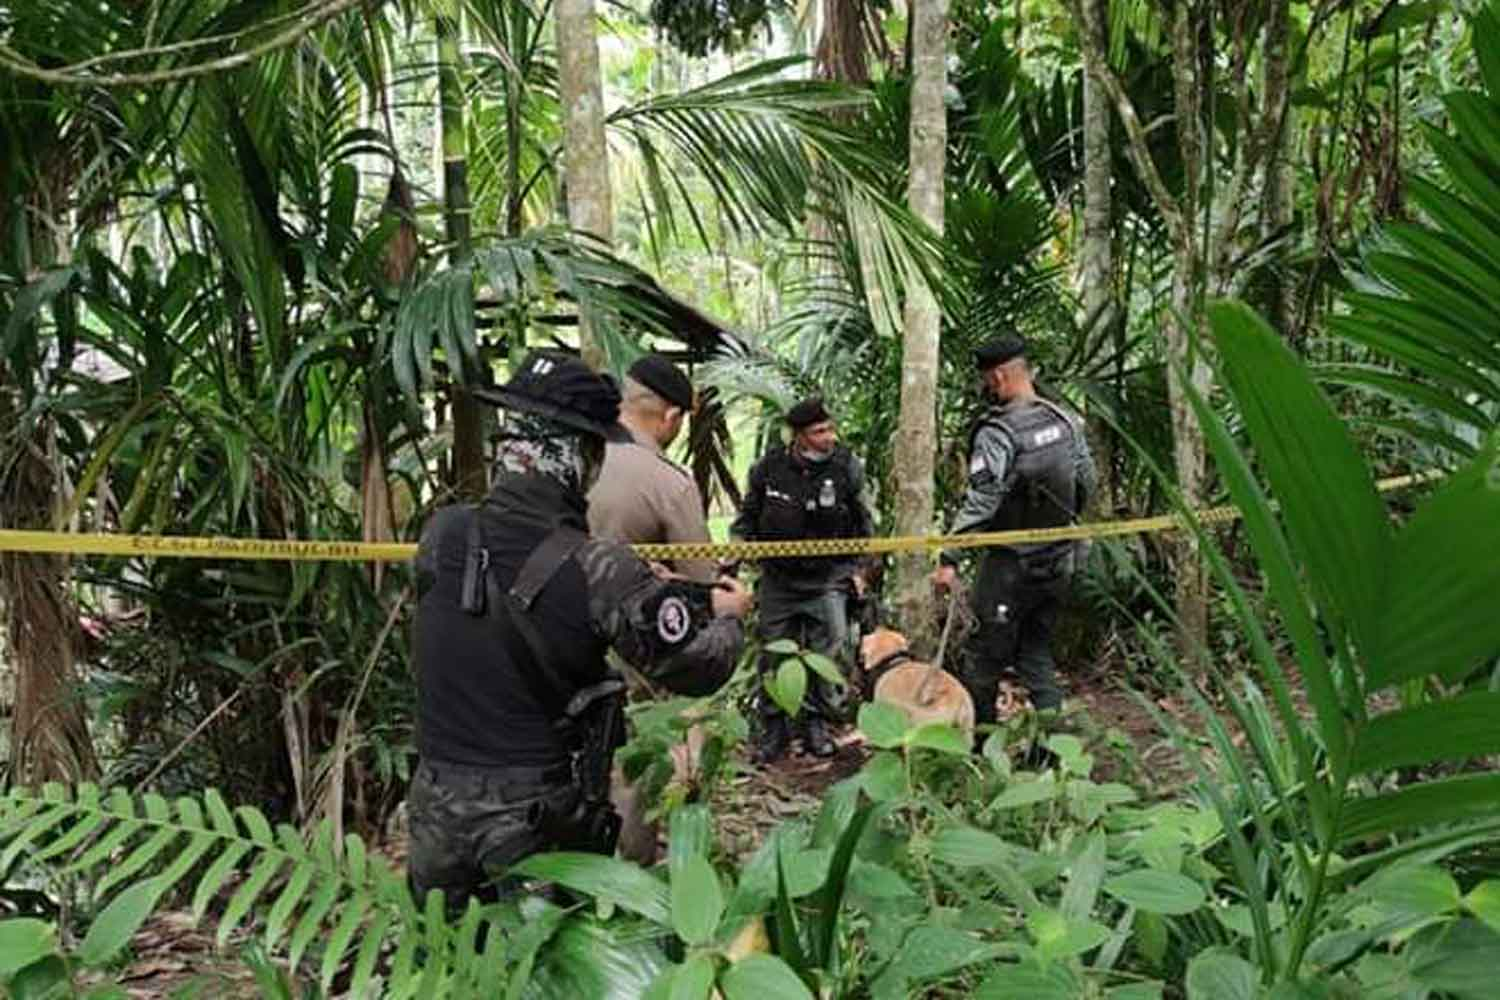 Border patrol police search the area around a village in Than To district, Yala, after finding an insurgent hideout on Tuesday morning. (Photo: Abdullah Benjakat)